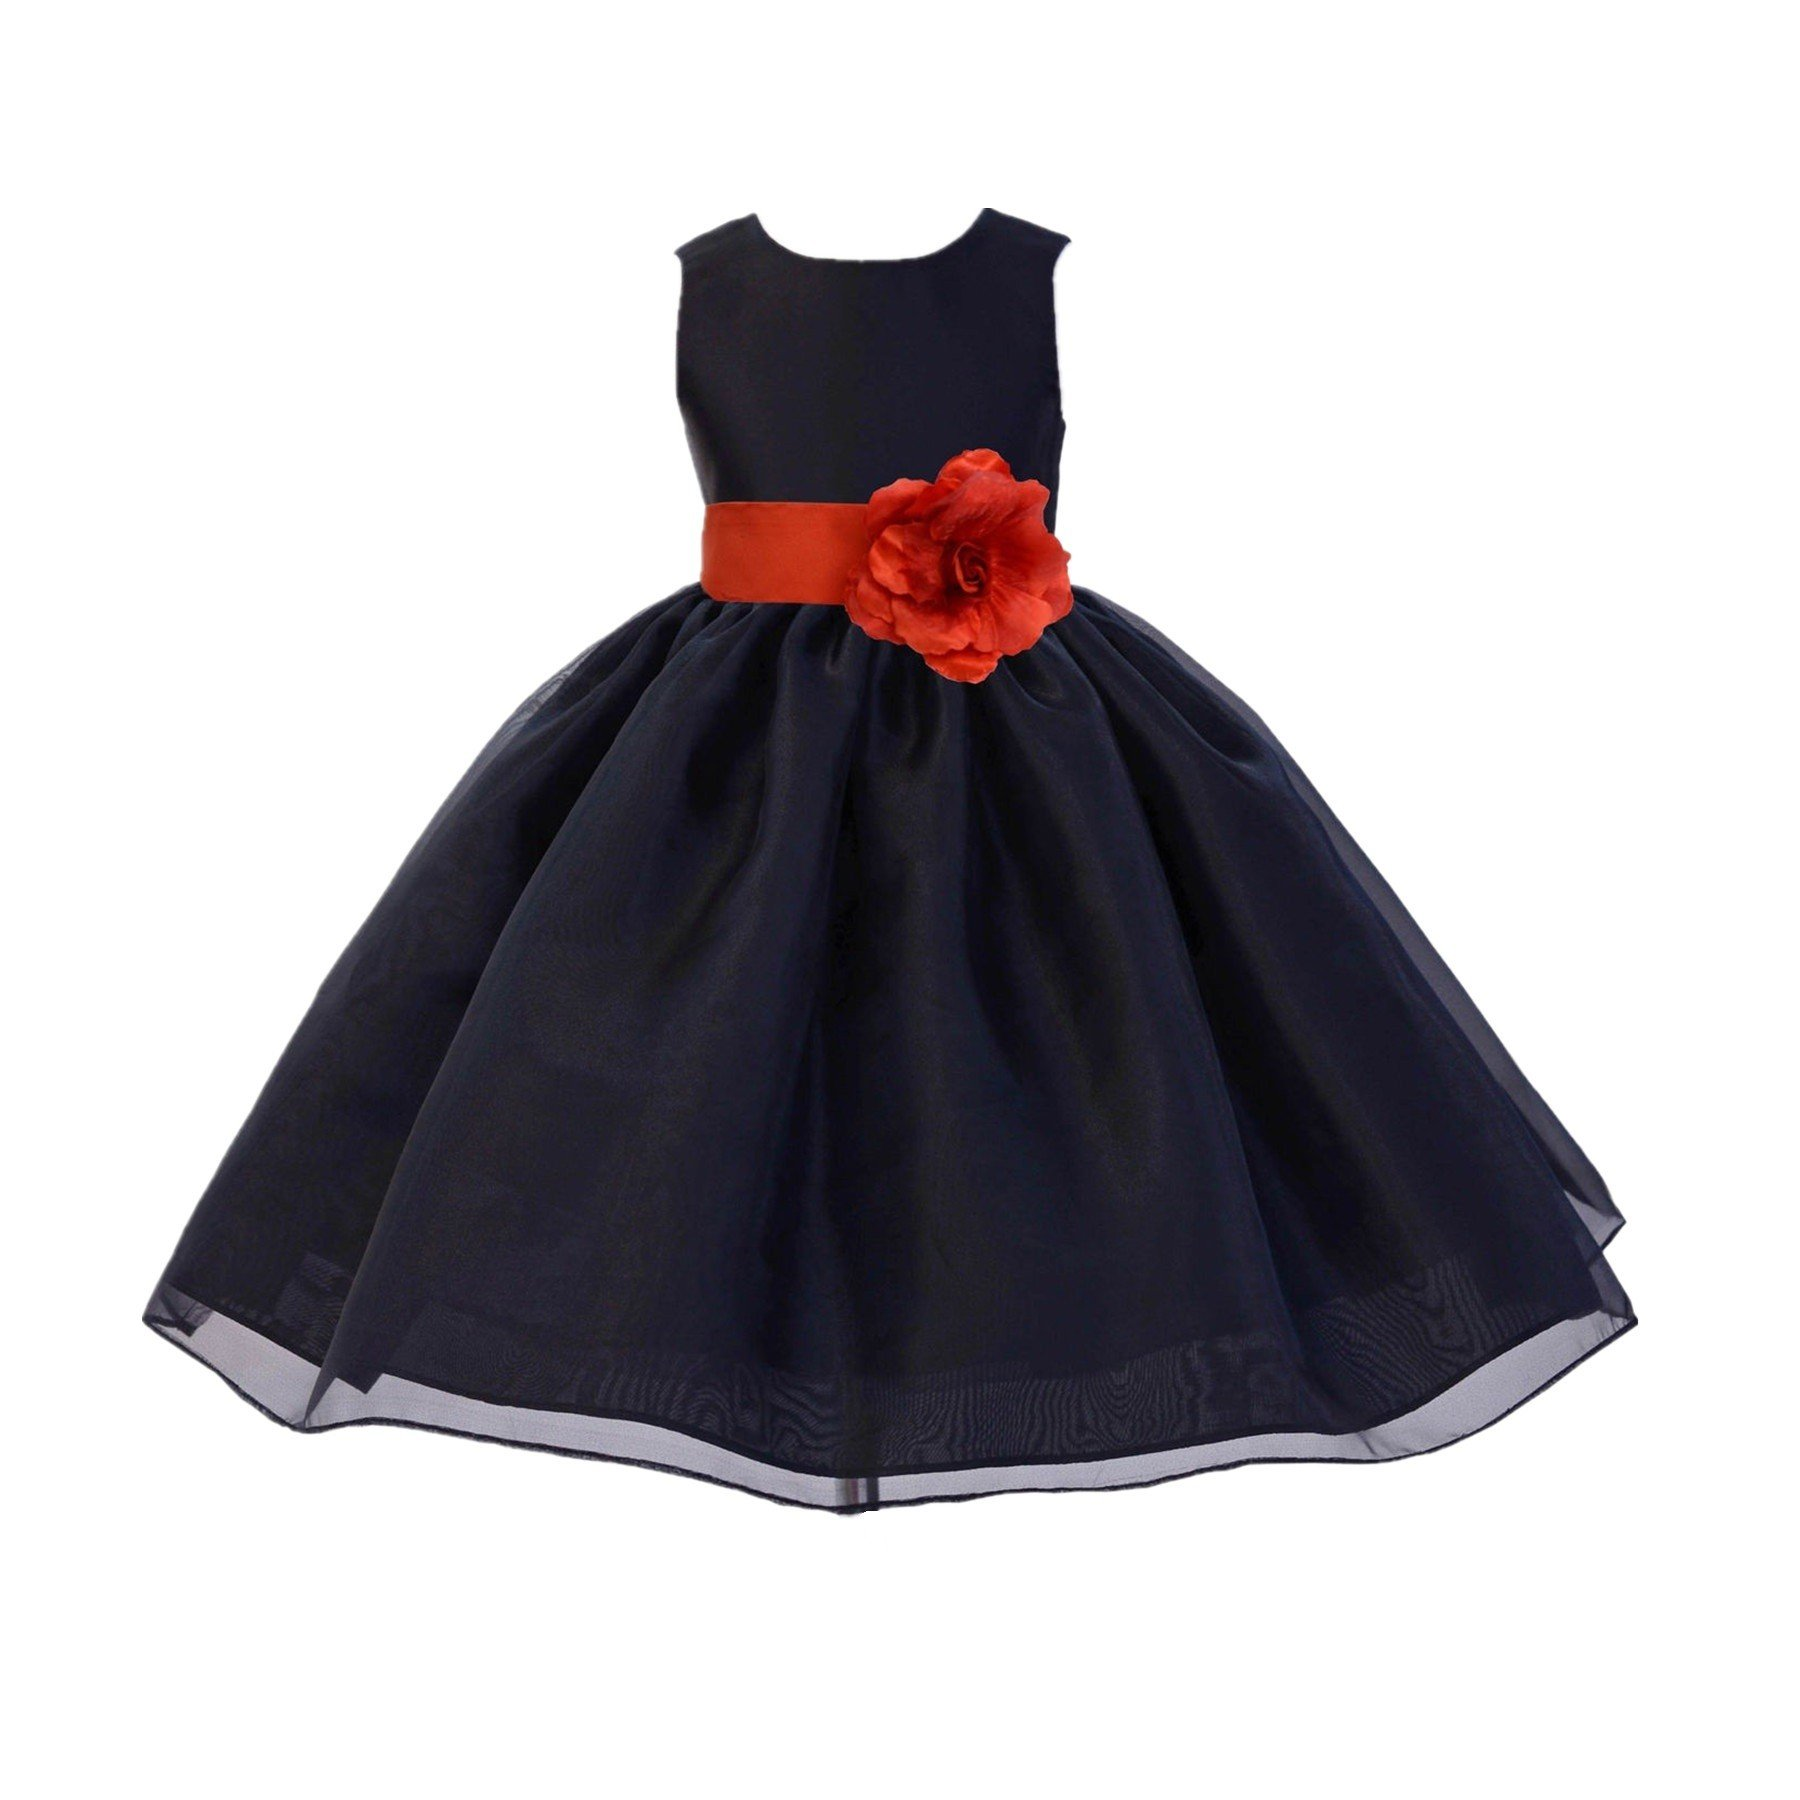 Black Satin Bodice Organza Skirt Formal Flower Girl Dresses Pageant Gown 841S 4